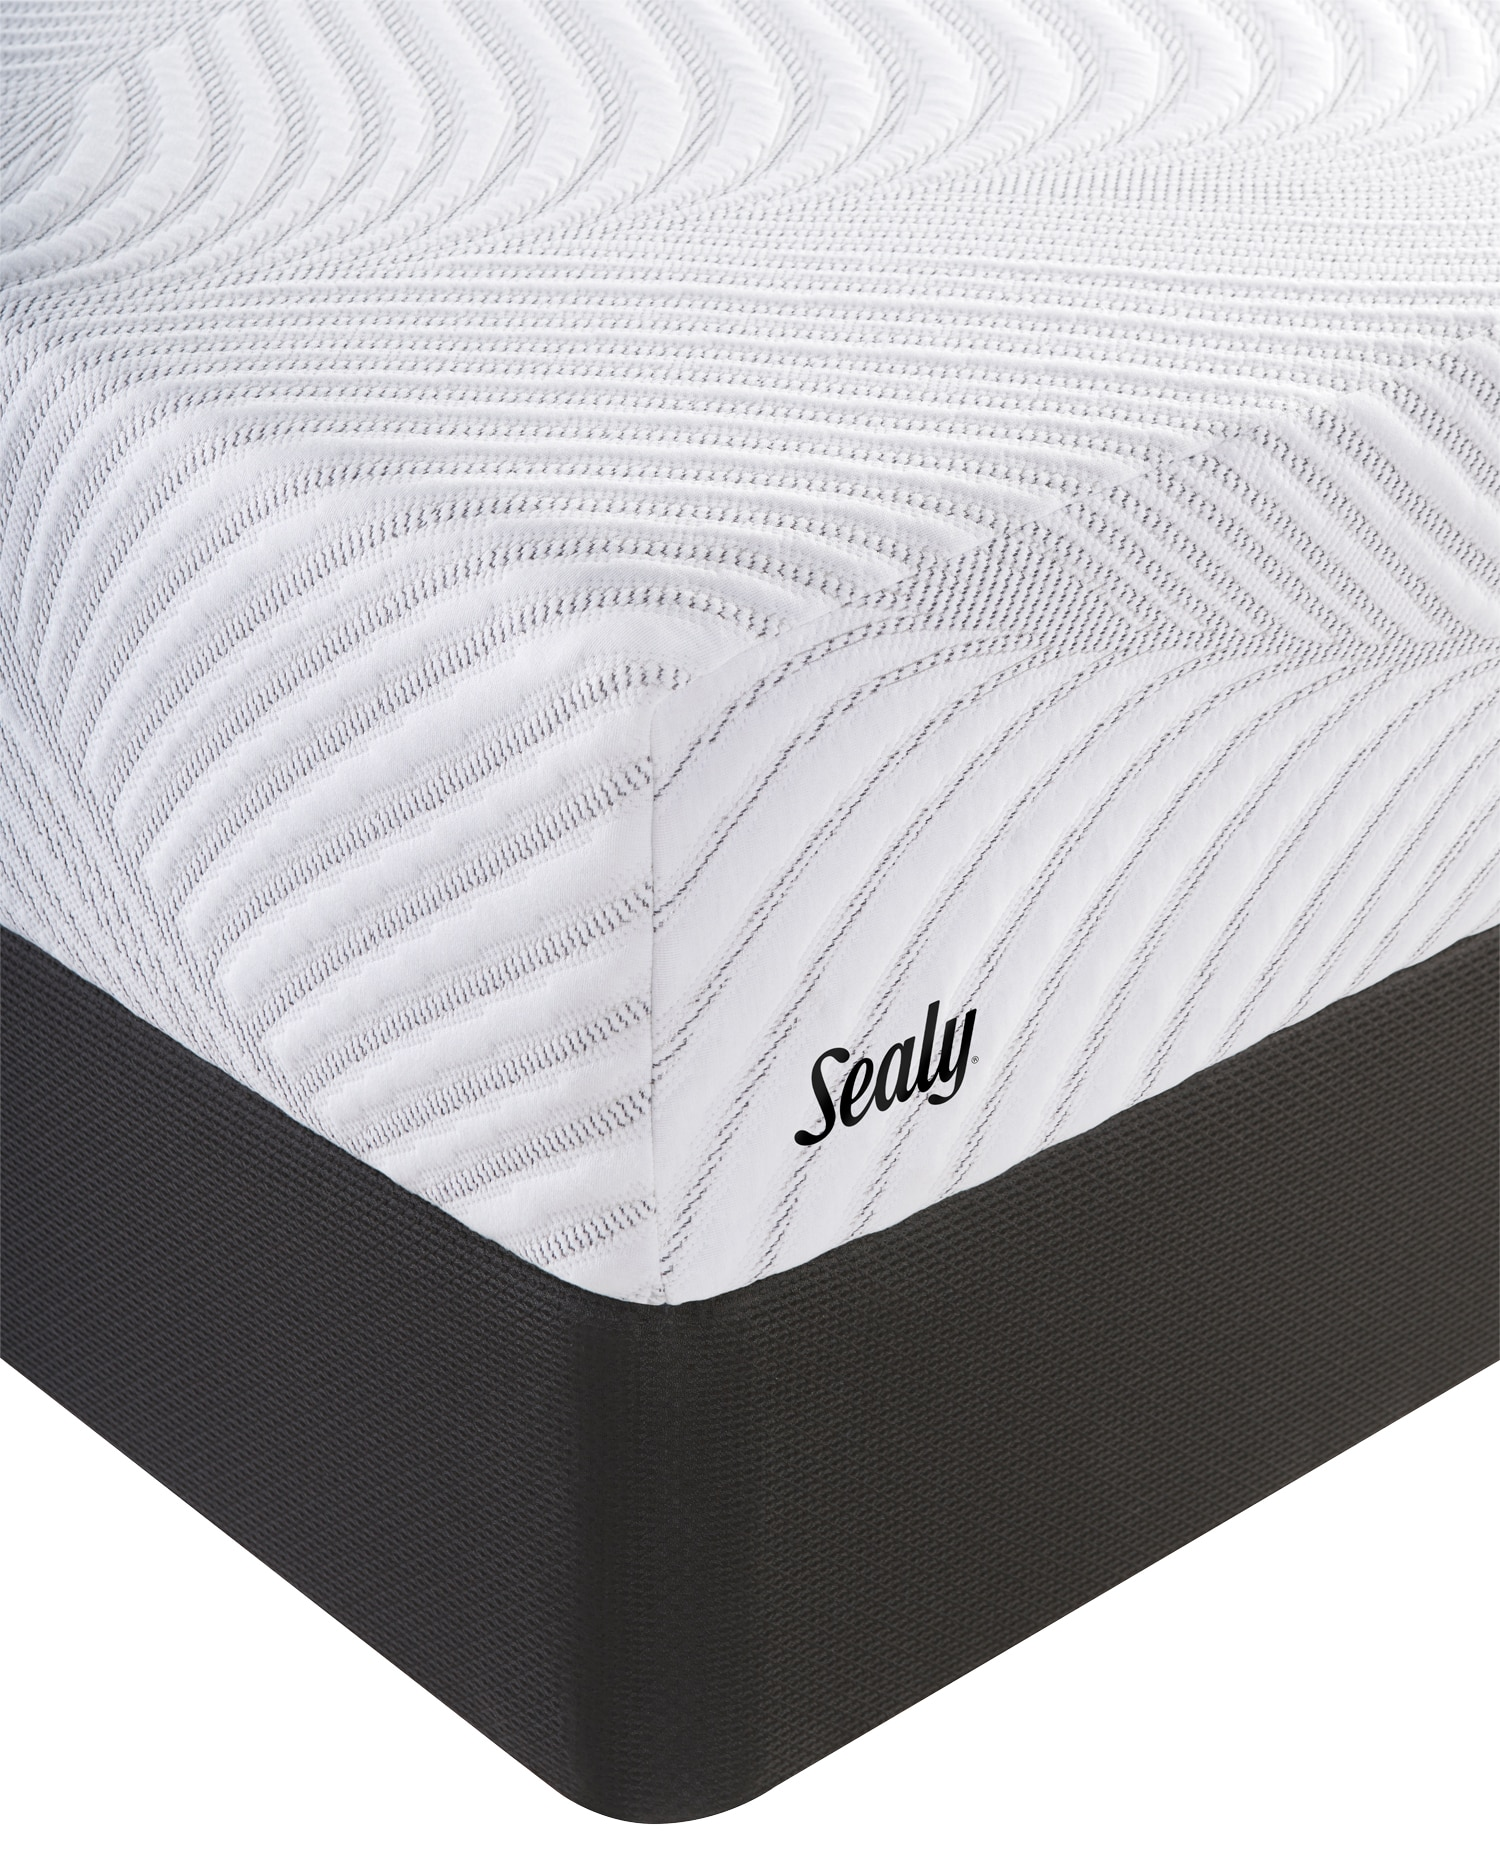 Sealy Upbeat Gel Memory Foam Queen Mattress And Foundation